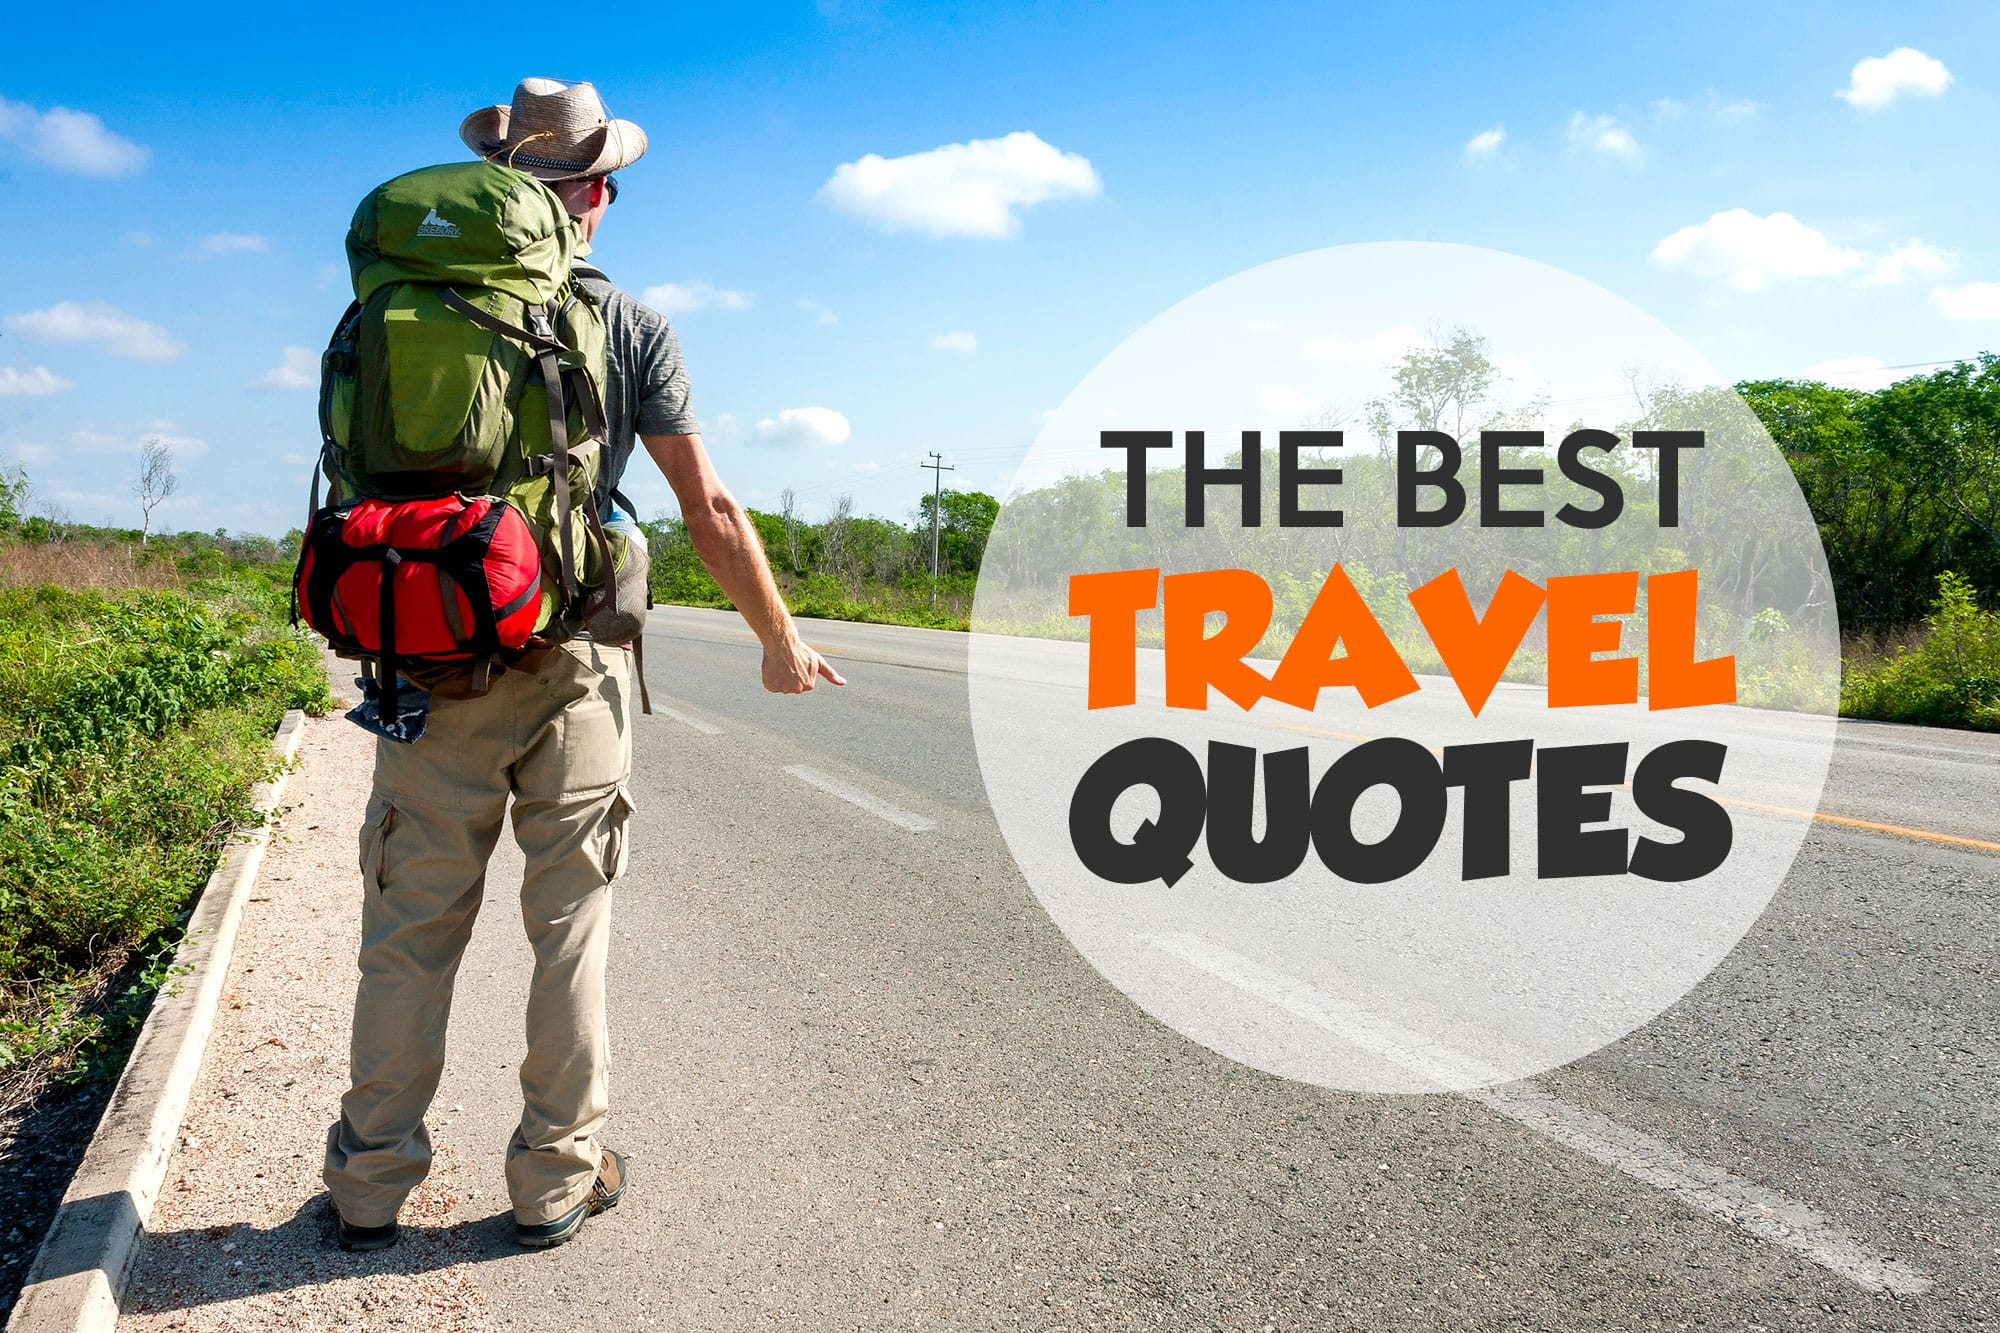 50 Best Travel Quotes With Images To Inspire Wanderlust